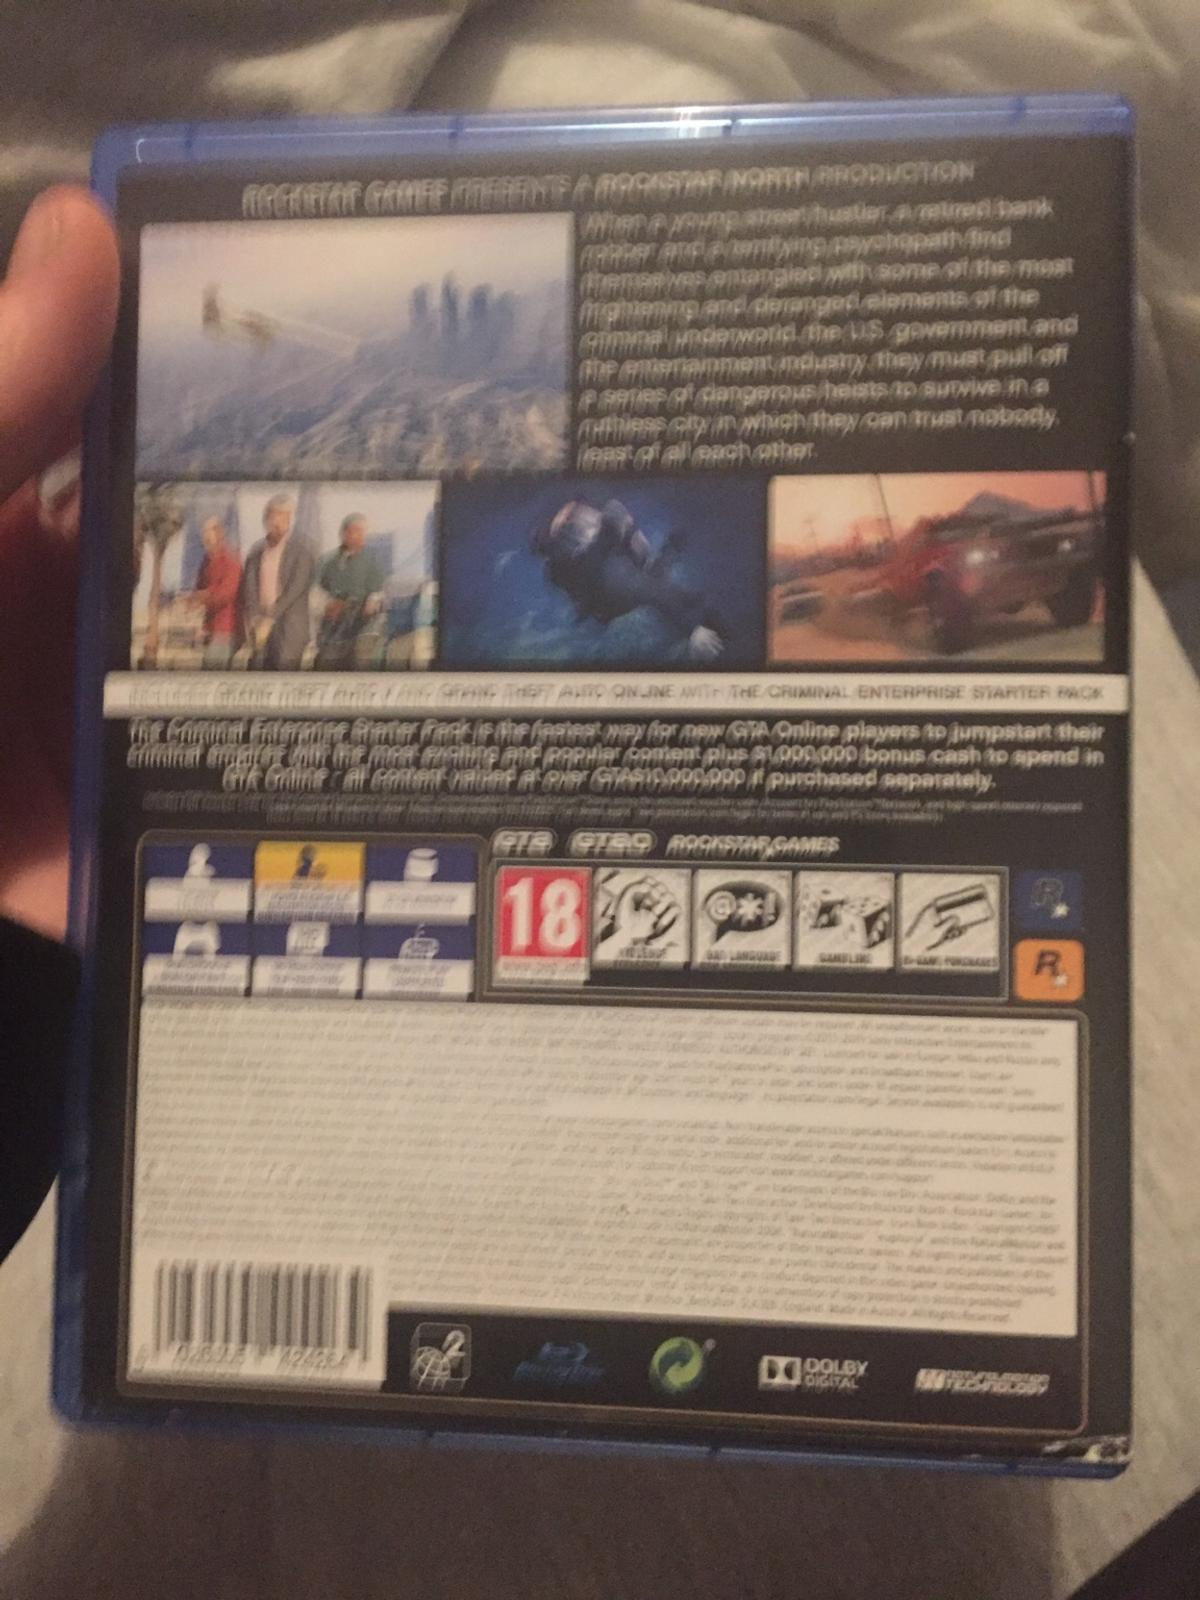 Brand new code never been used for ps4